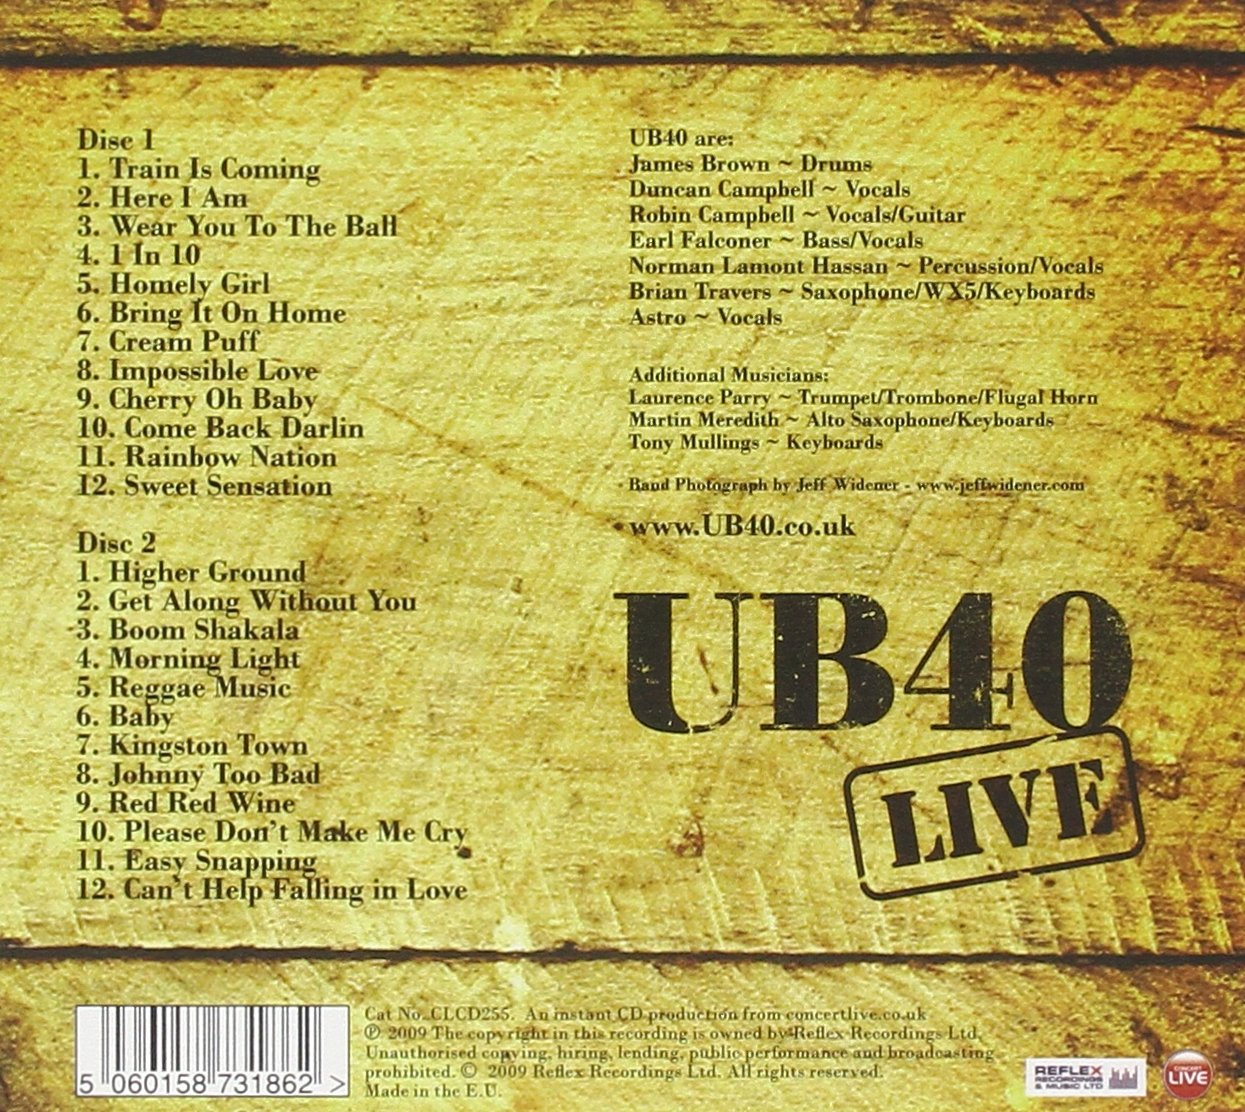 Live at the London O2 Arena by 101 DISTRIBUTION